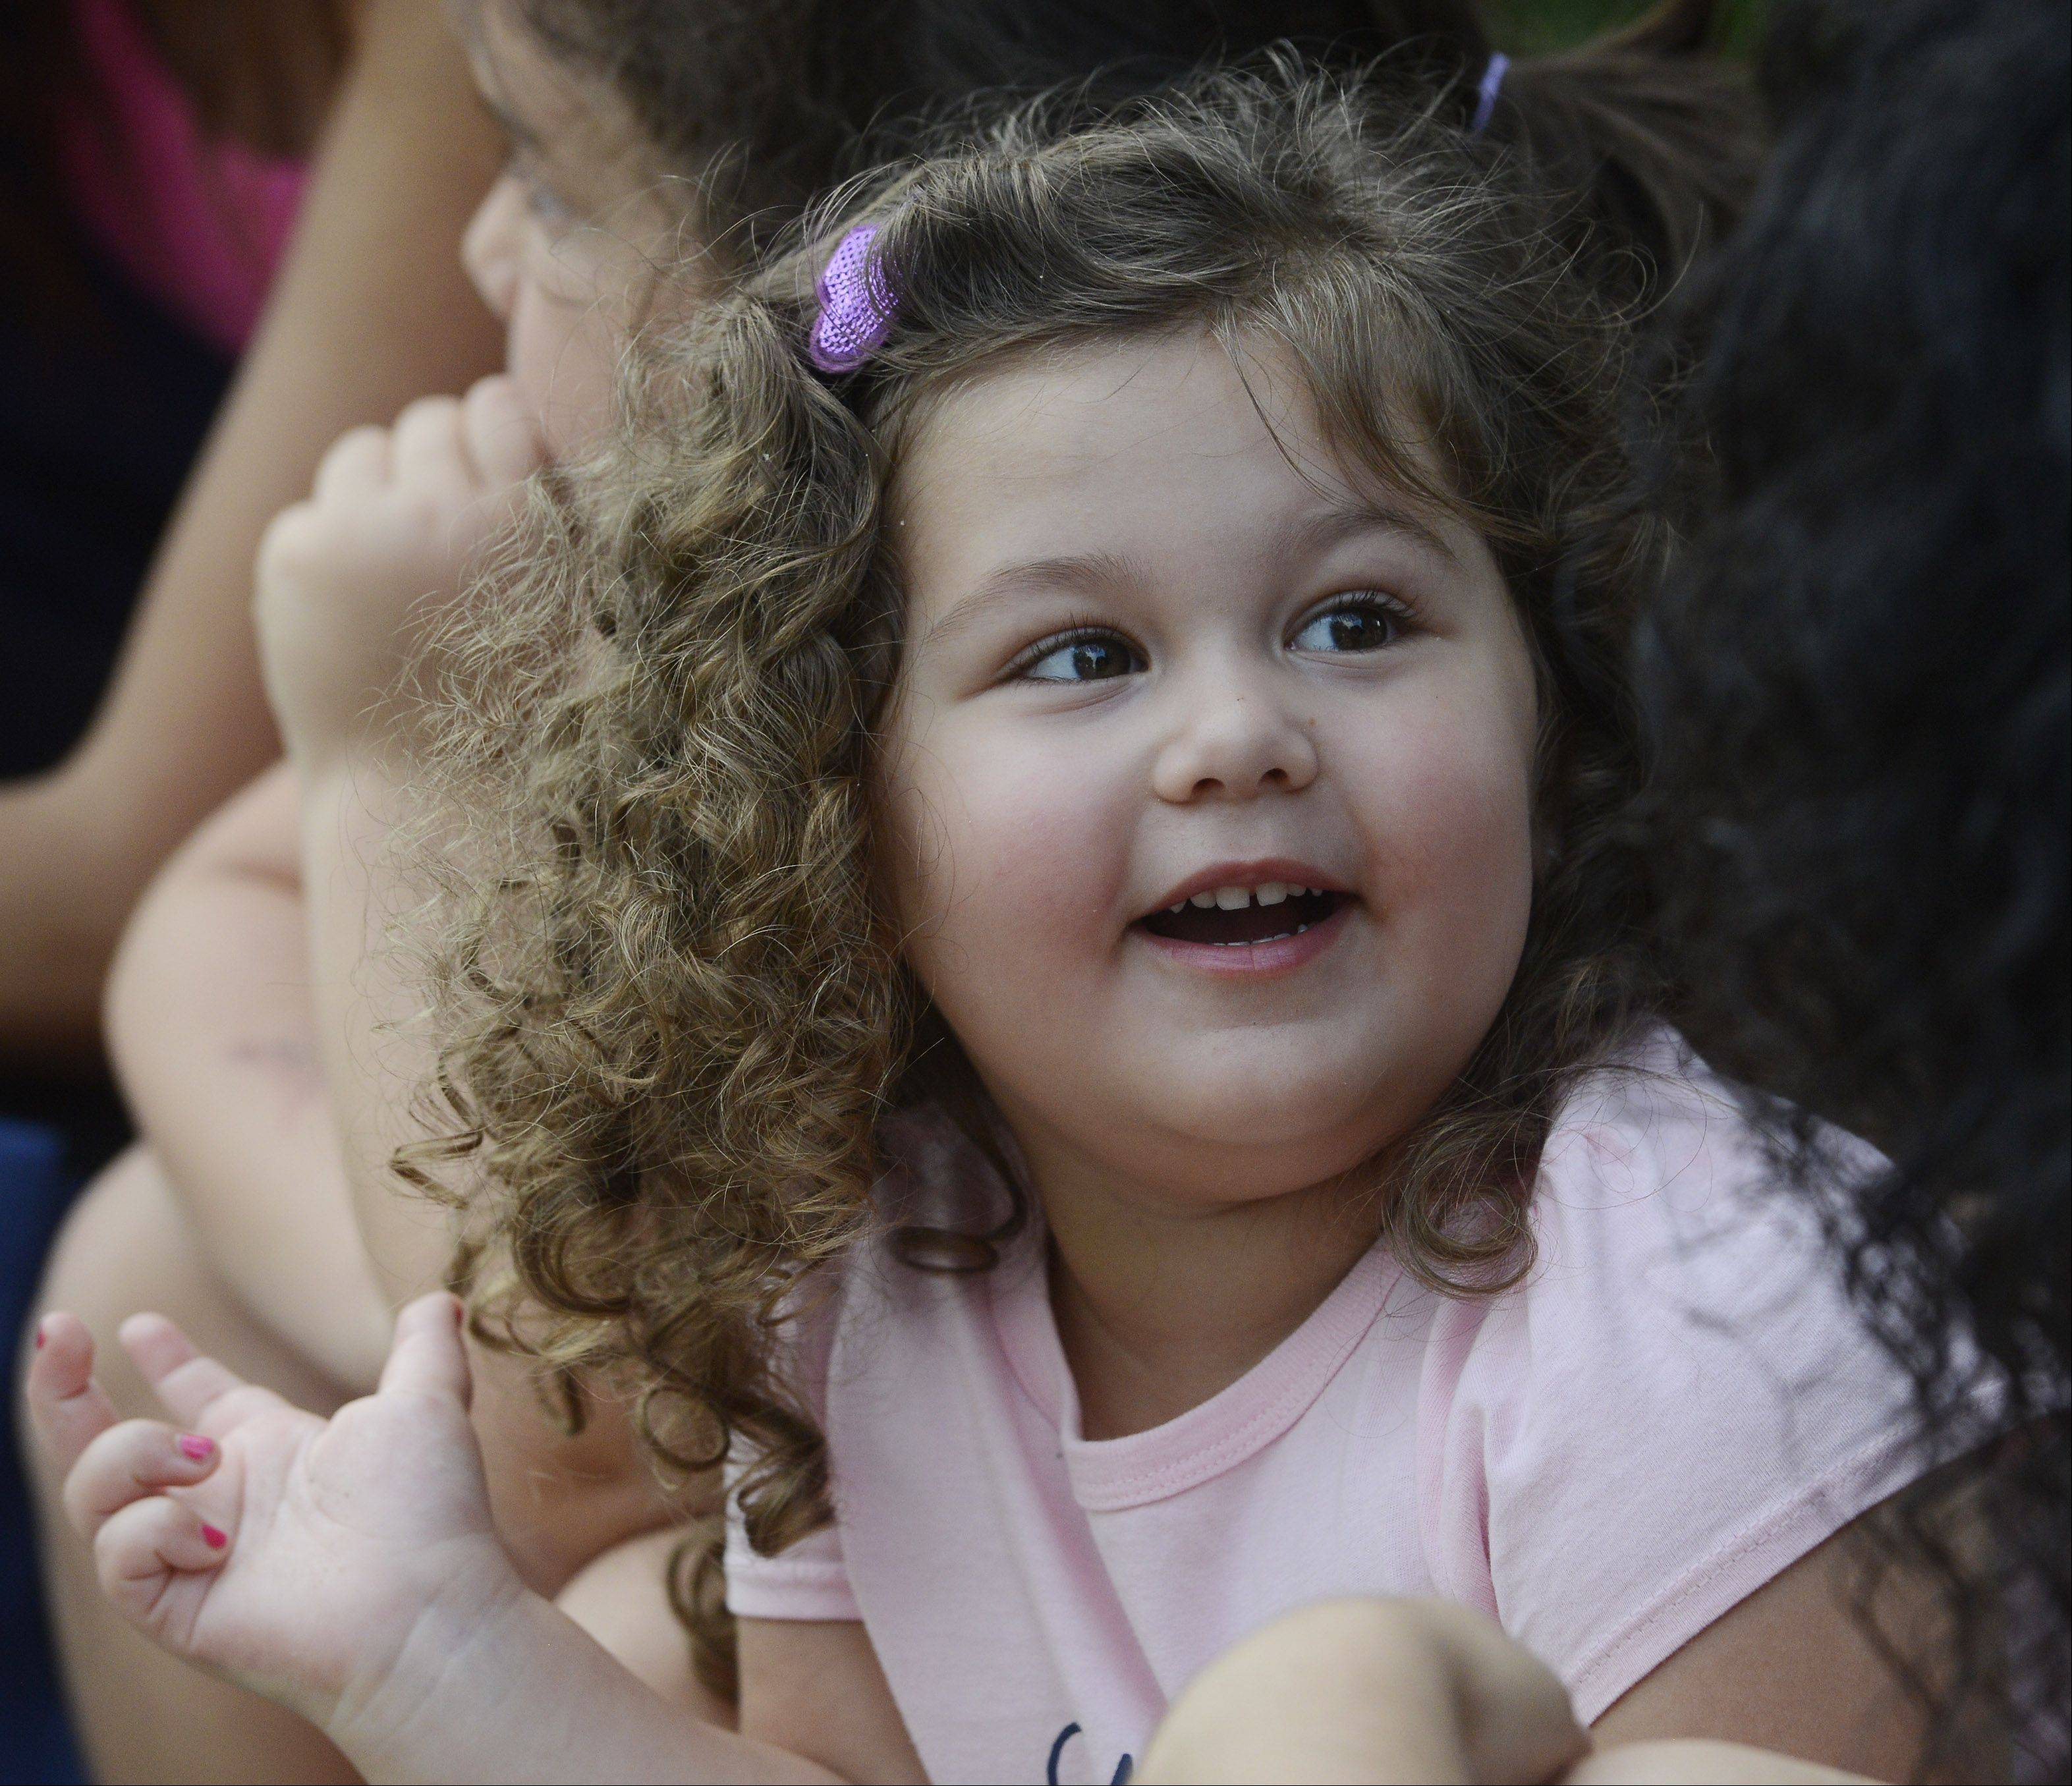 Vincenza Principato, 3, of Roselle smiles while watching the BMX bike stunt show during the Bartlett National Night Out at Bartlett Park Tuesday.